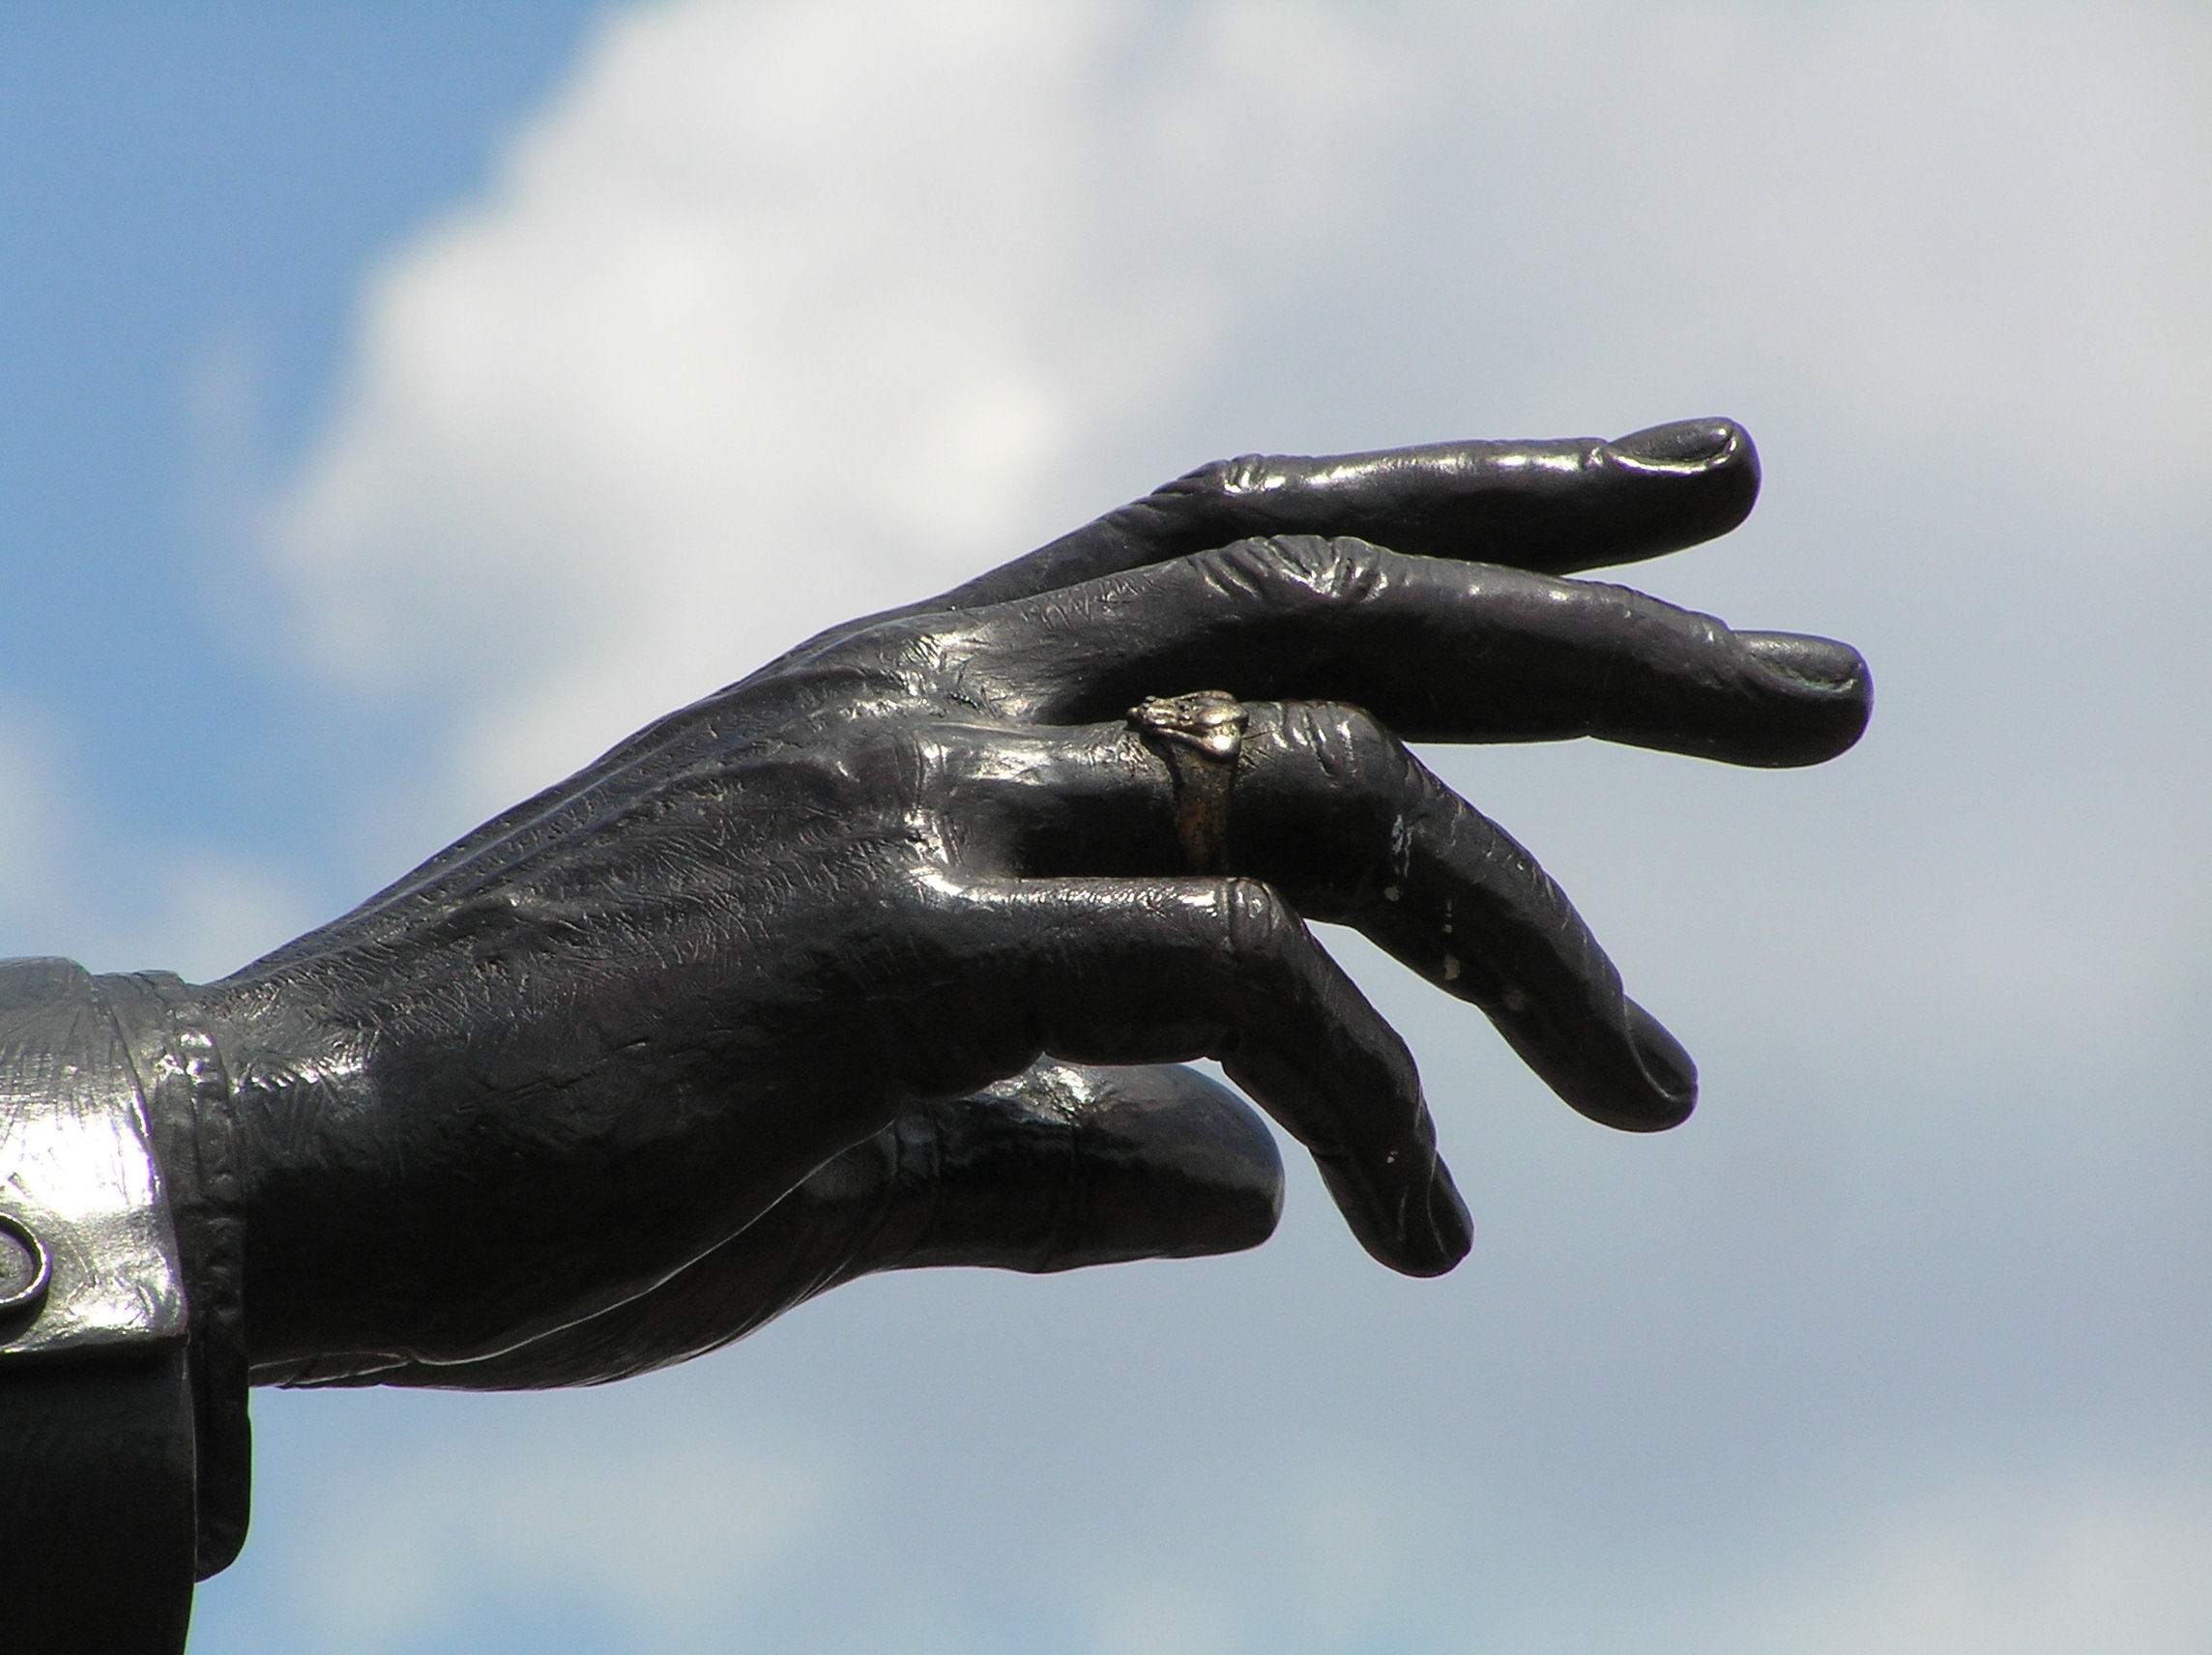 Walt Disney's outstretched hand on the Partners' Statue at The Magic Kingdom at Disney World.